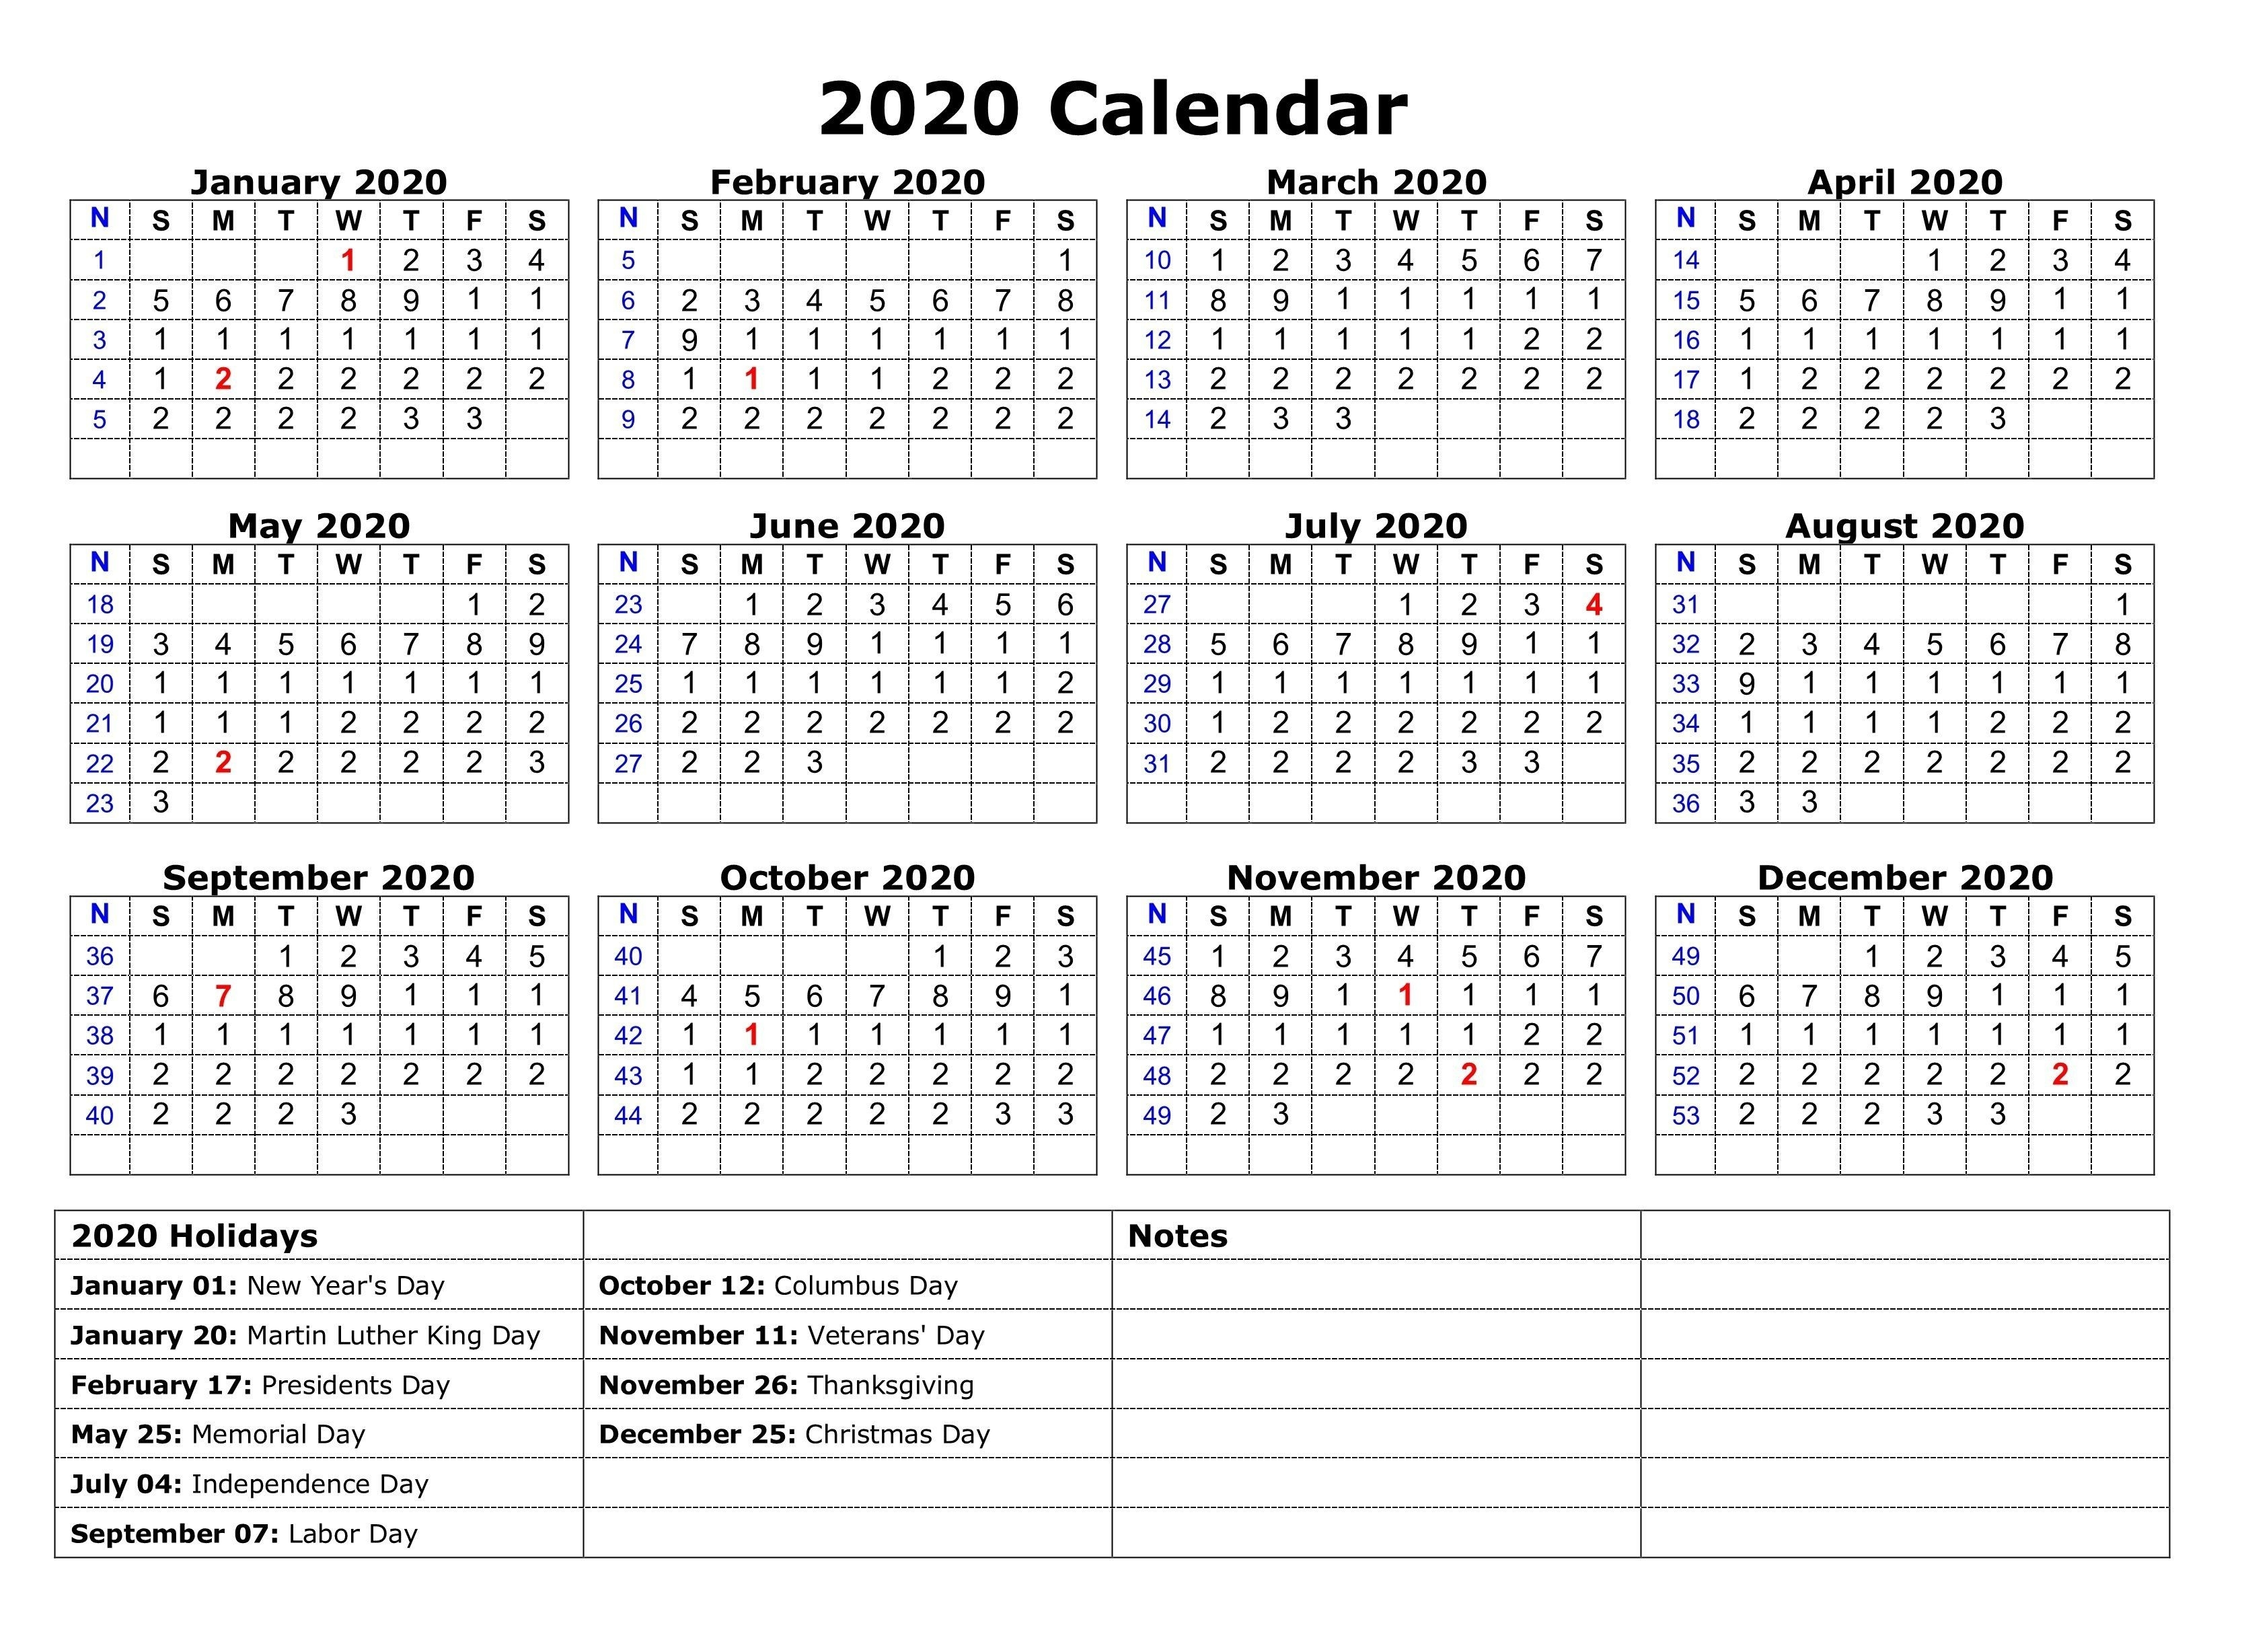 Printable 2020 One Page Holidays Calendar | 2020 Calendars-Calendar 2020 With Us Holidays Printable